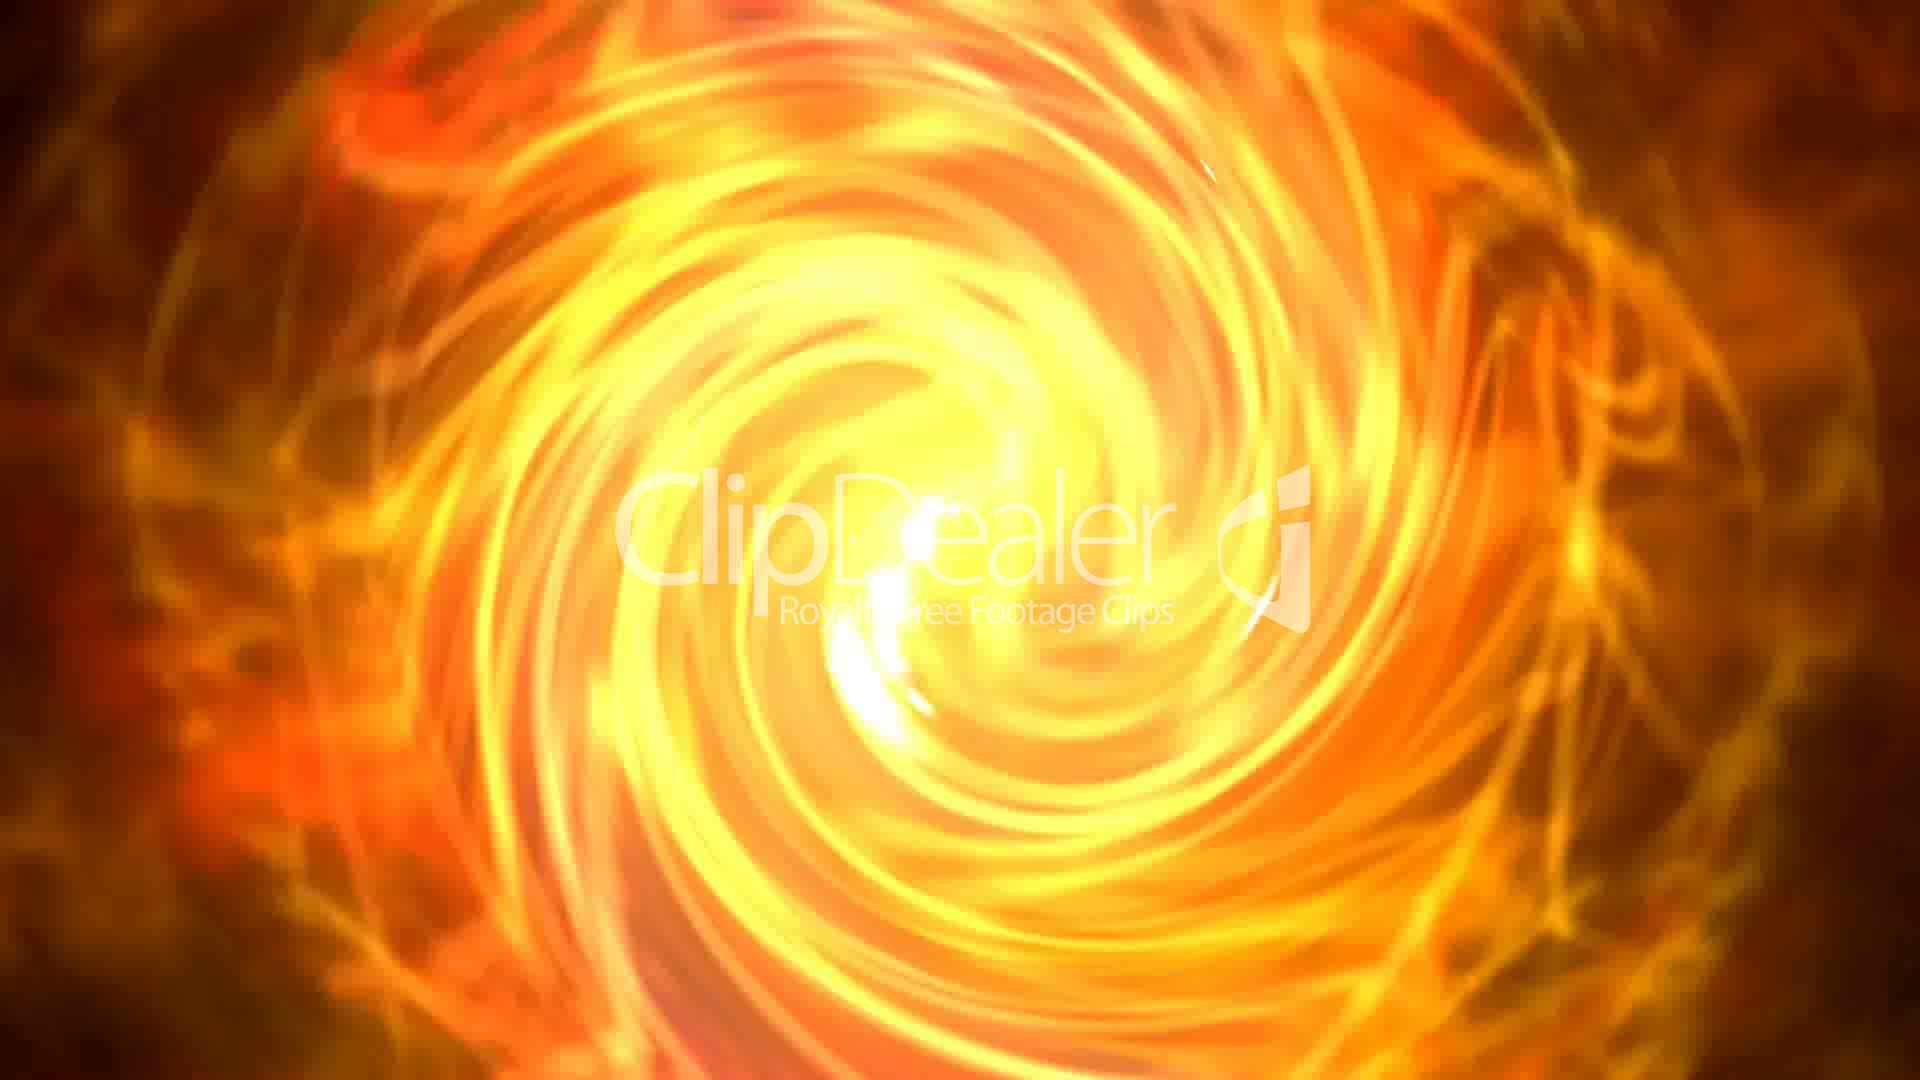 Solar stormsflame hurricaneswirl fire cyclones shaped